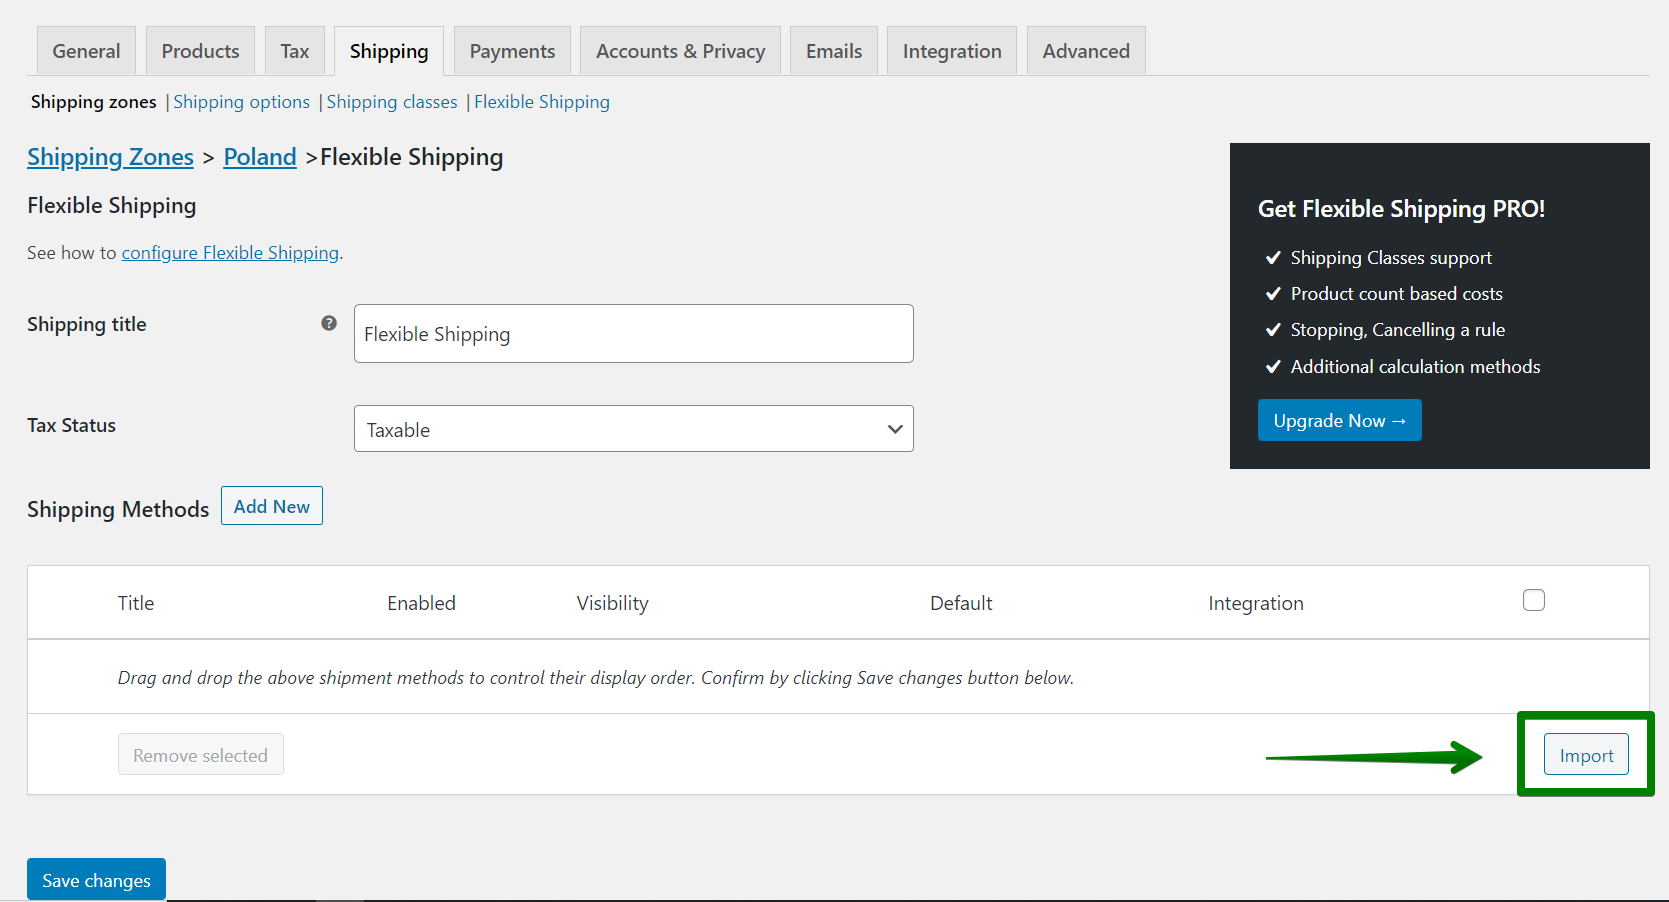 Flexible Shipping import shipping method button